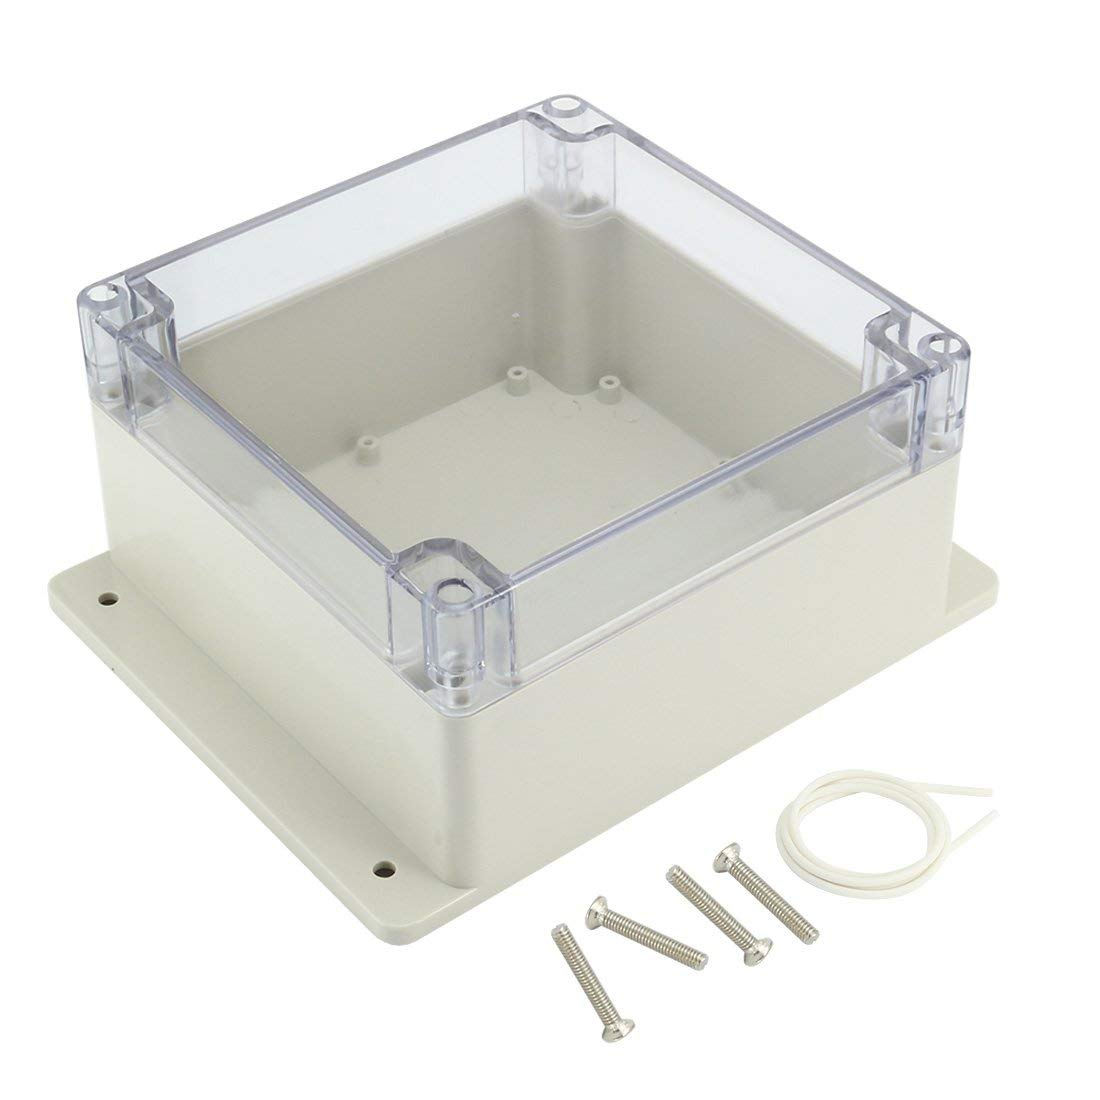 160mmx160mmx90mm ABS Junction Box Universal Project Enclosure w PC Transparent Cover sourcingmap 6.3x6.3x3.54